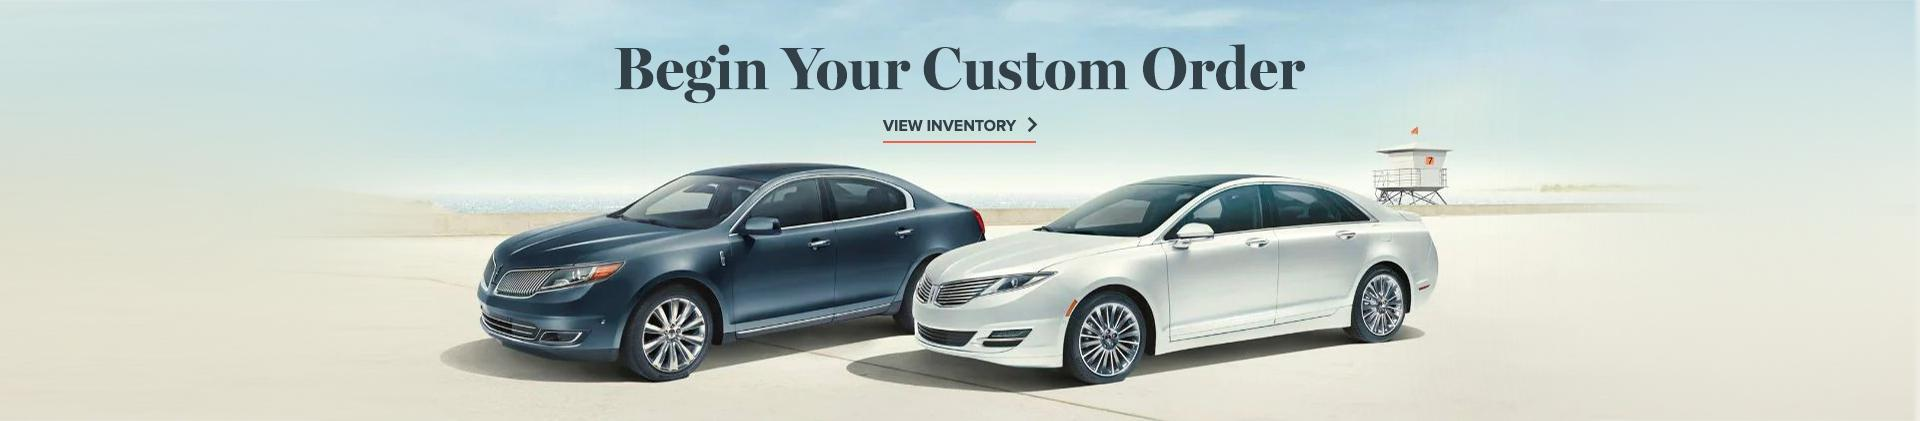 Custom Order Your New Lincoln from South Bay Lincoln in Hawthorne, CA